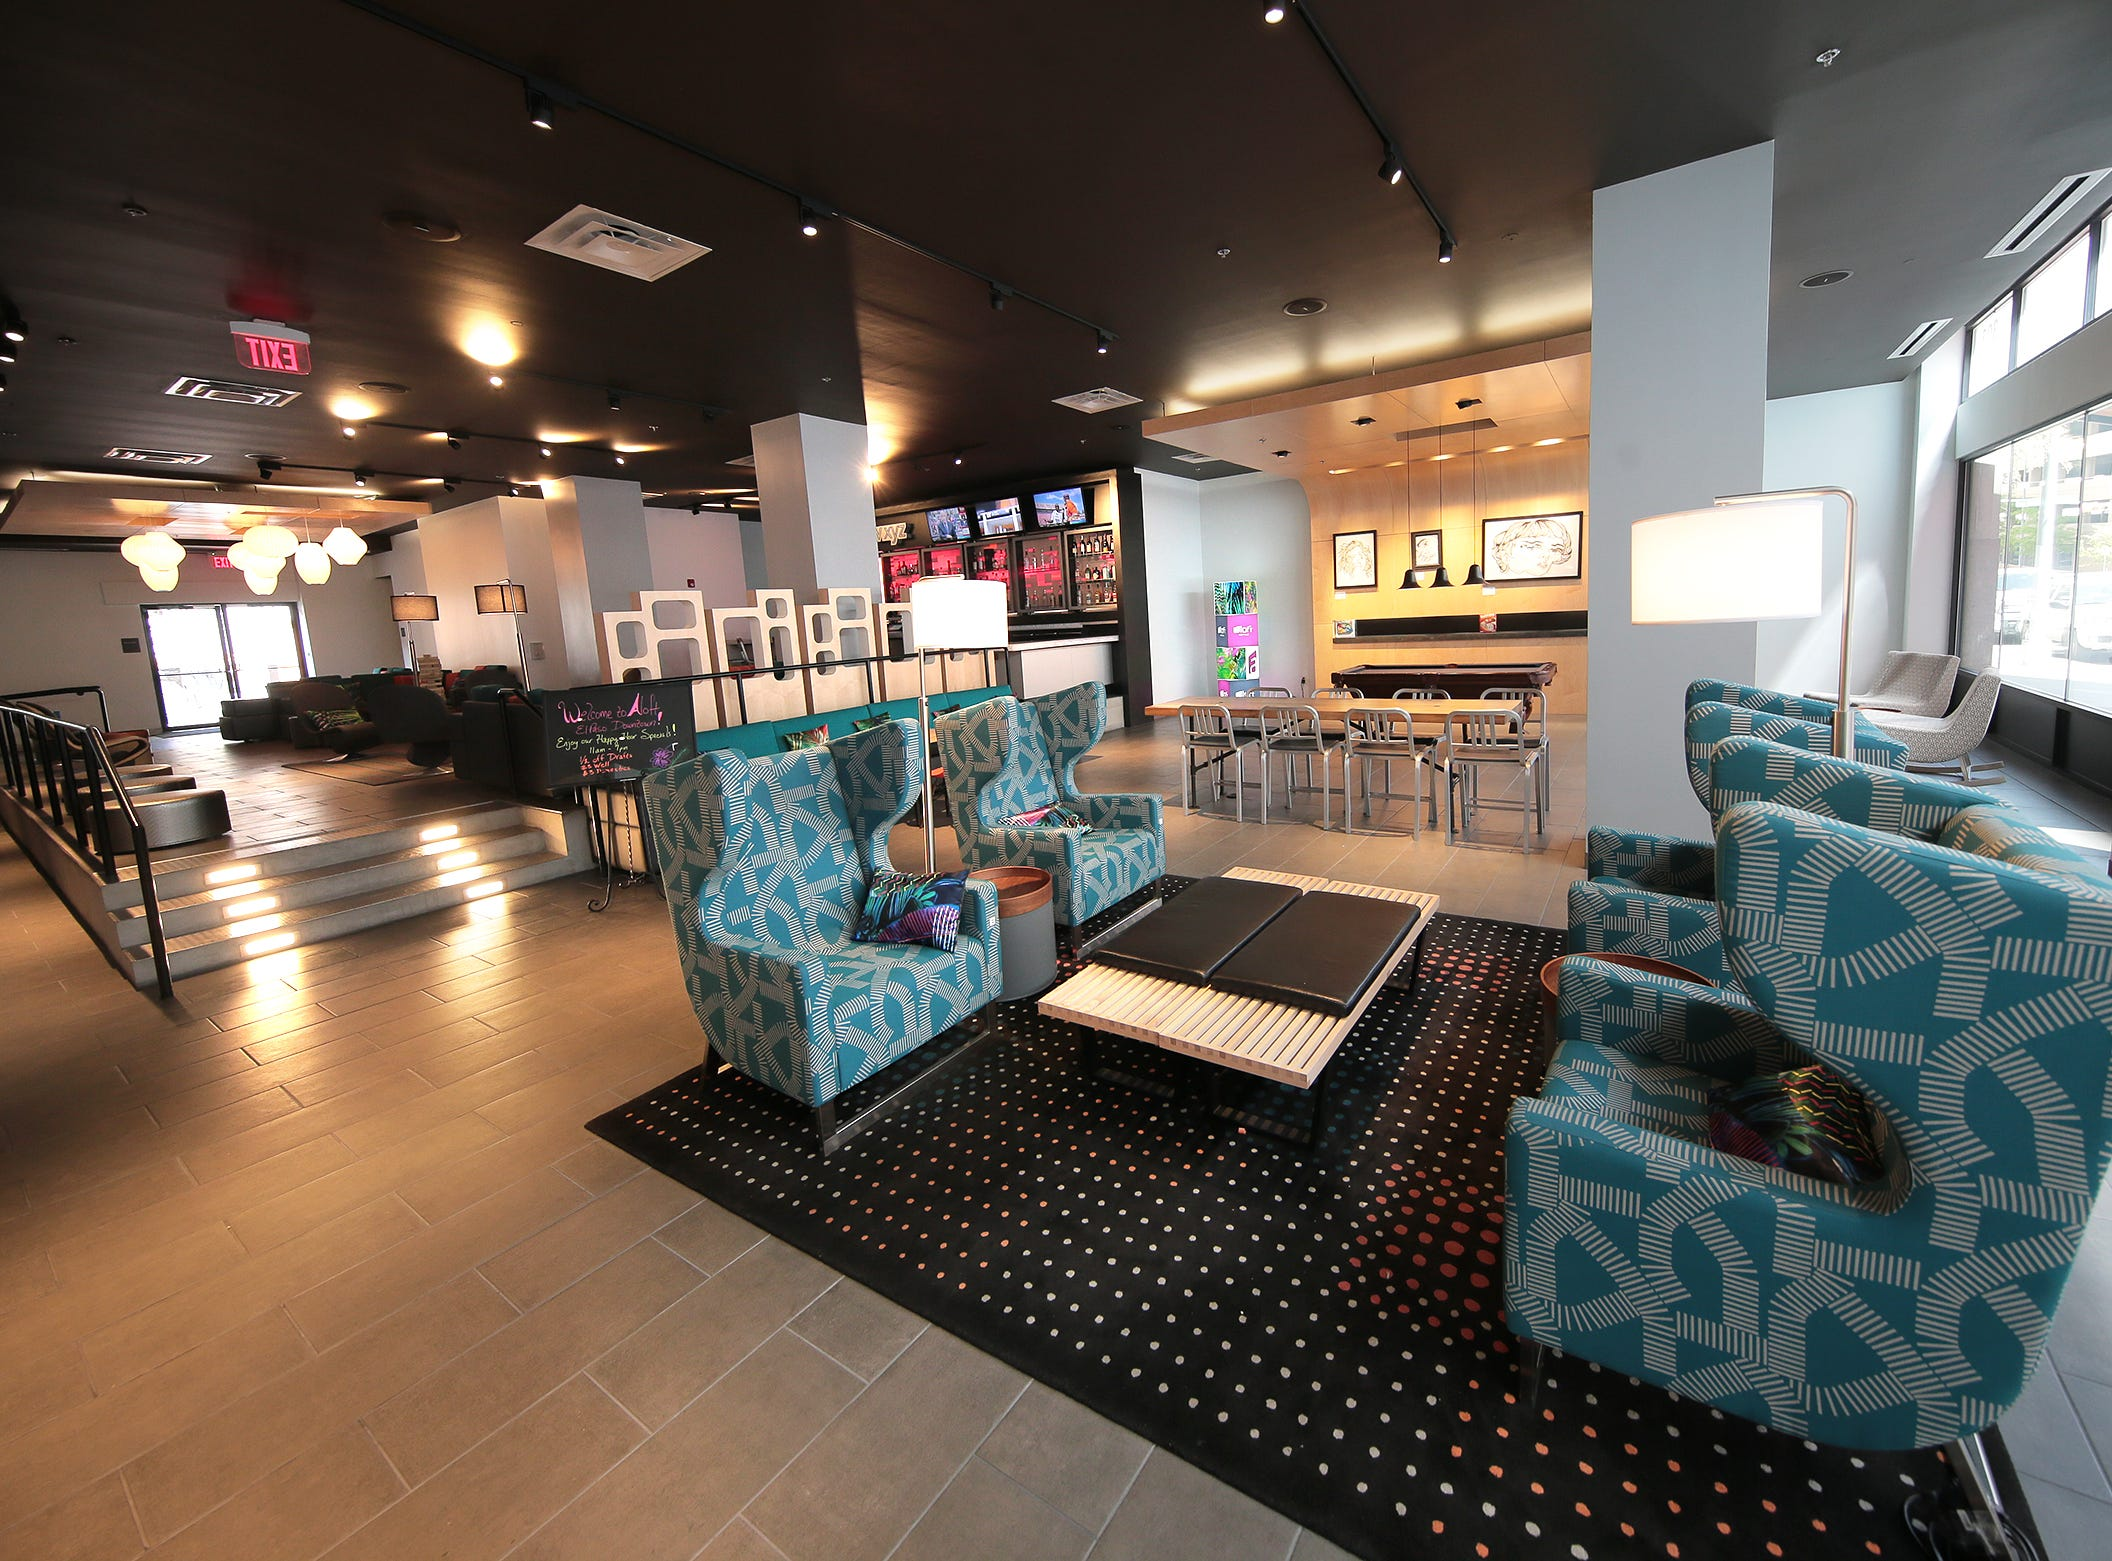 The Aloft Hotel in downtown El Paso features a modern lobby with a full bar and restaurant.